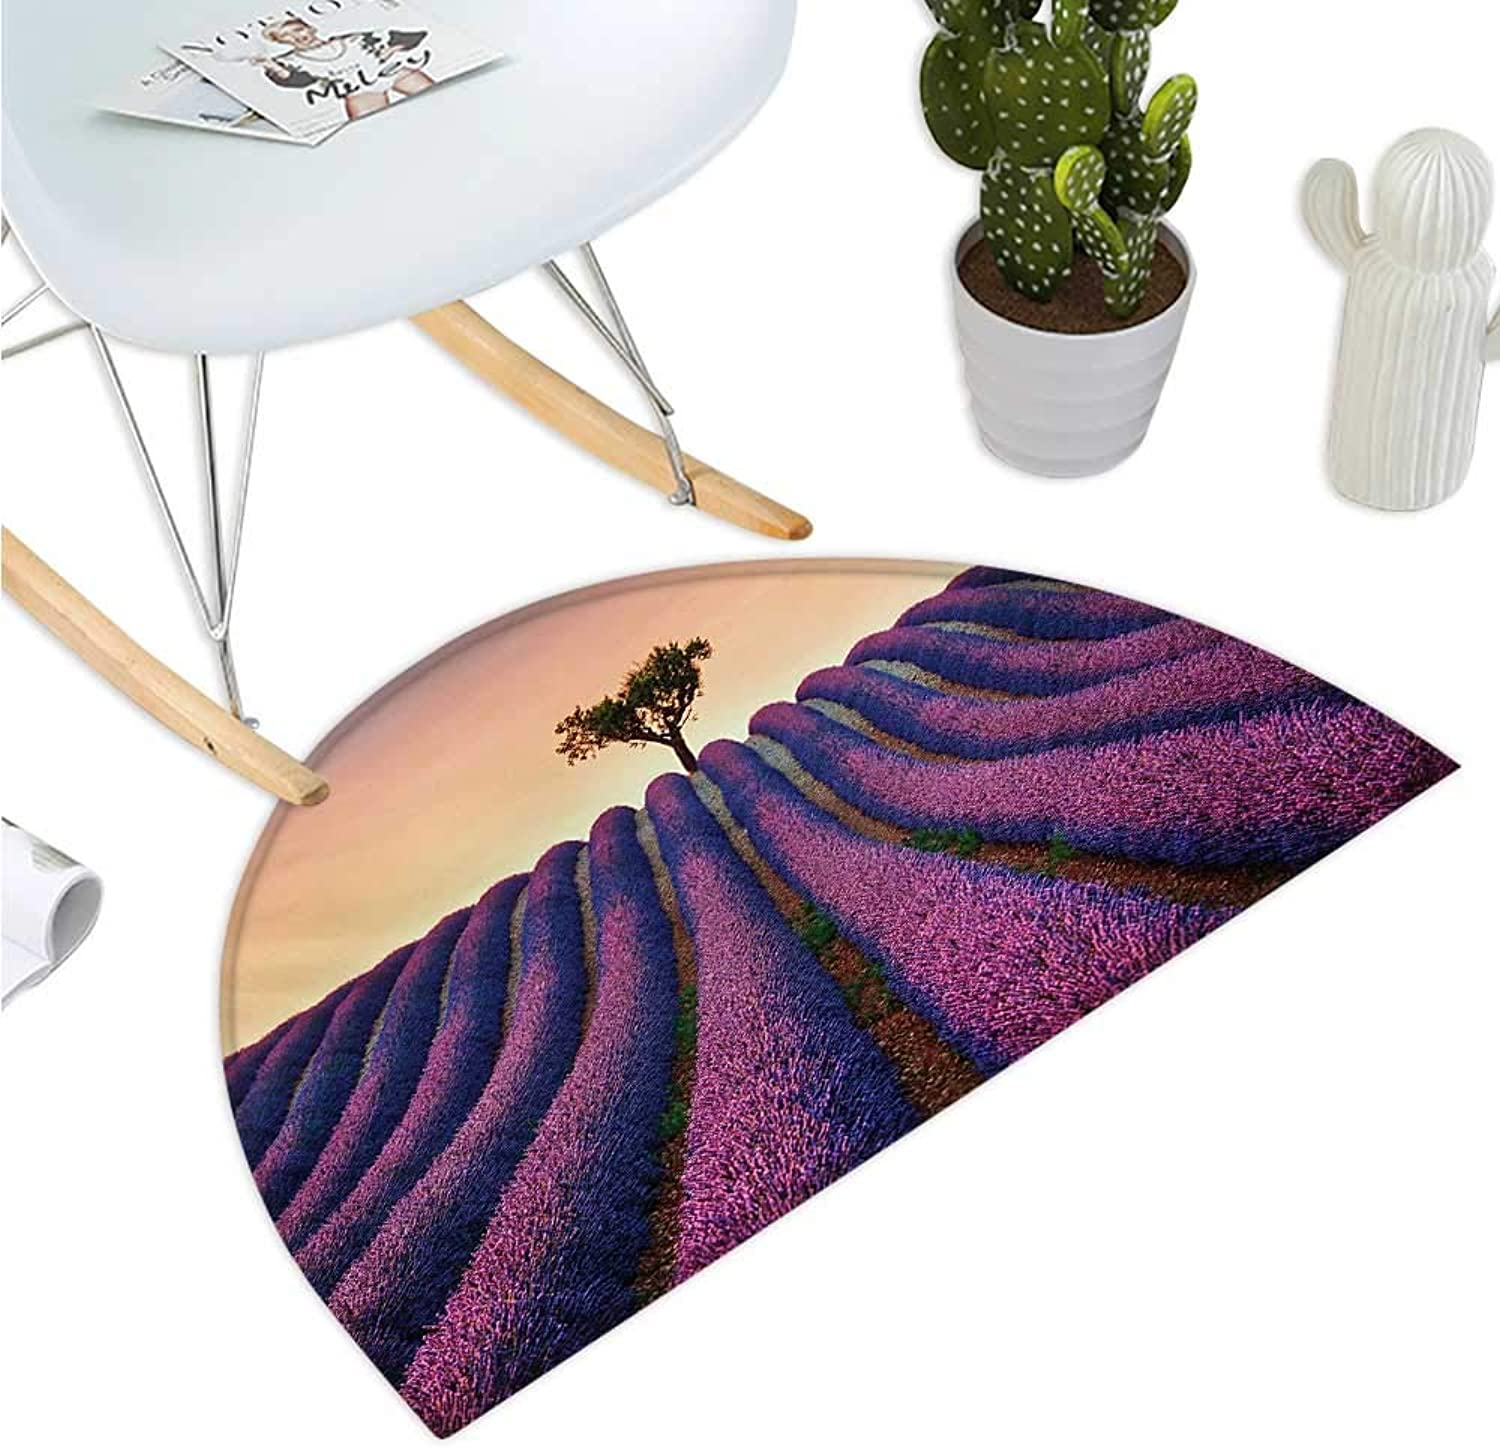 Tree Half Round Door mats Lavender Flowers Blooming Field and A Tree Uphill on Sunset Valensole France Print Bathroom Mat H 35.4  xD 53.1  Purple Peach